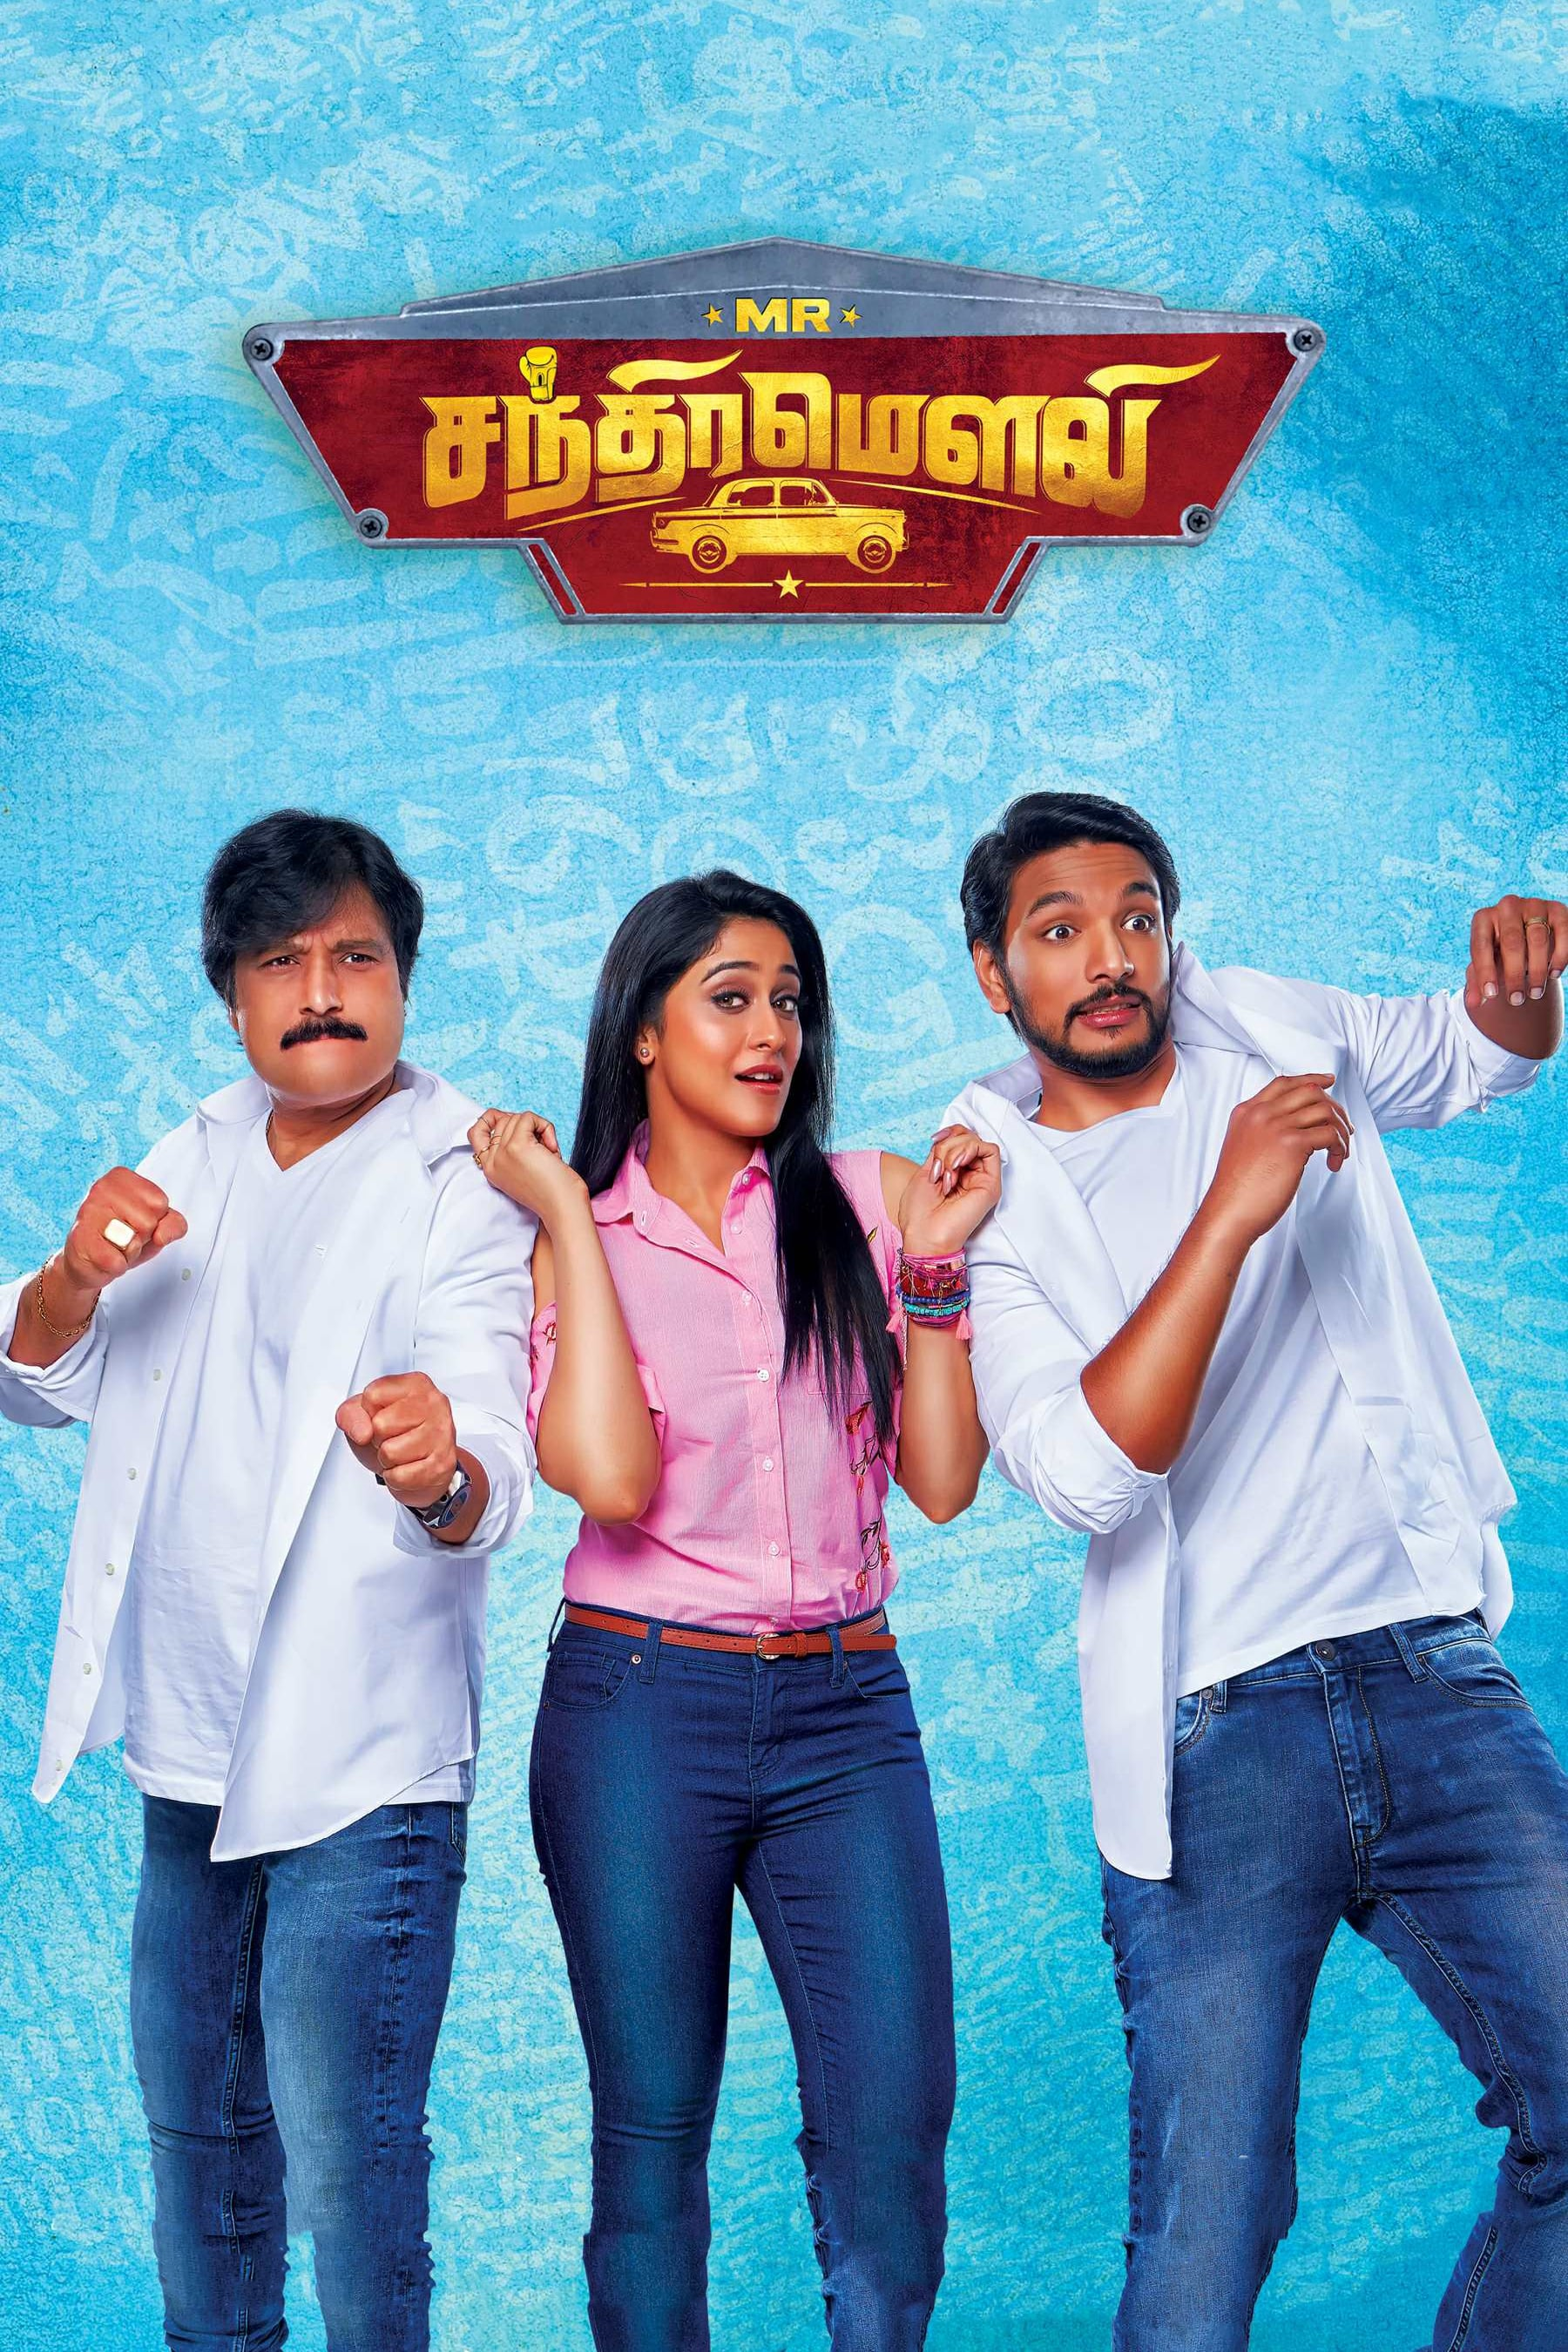 image for Mr. Chandramouli